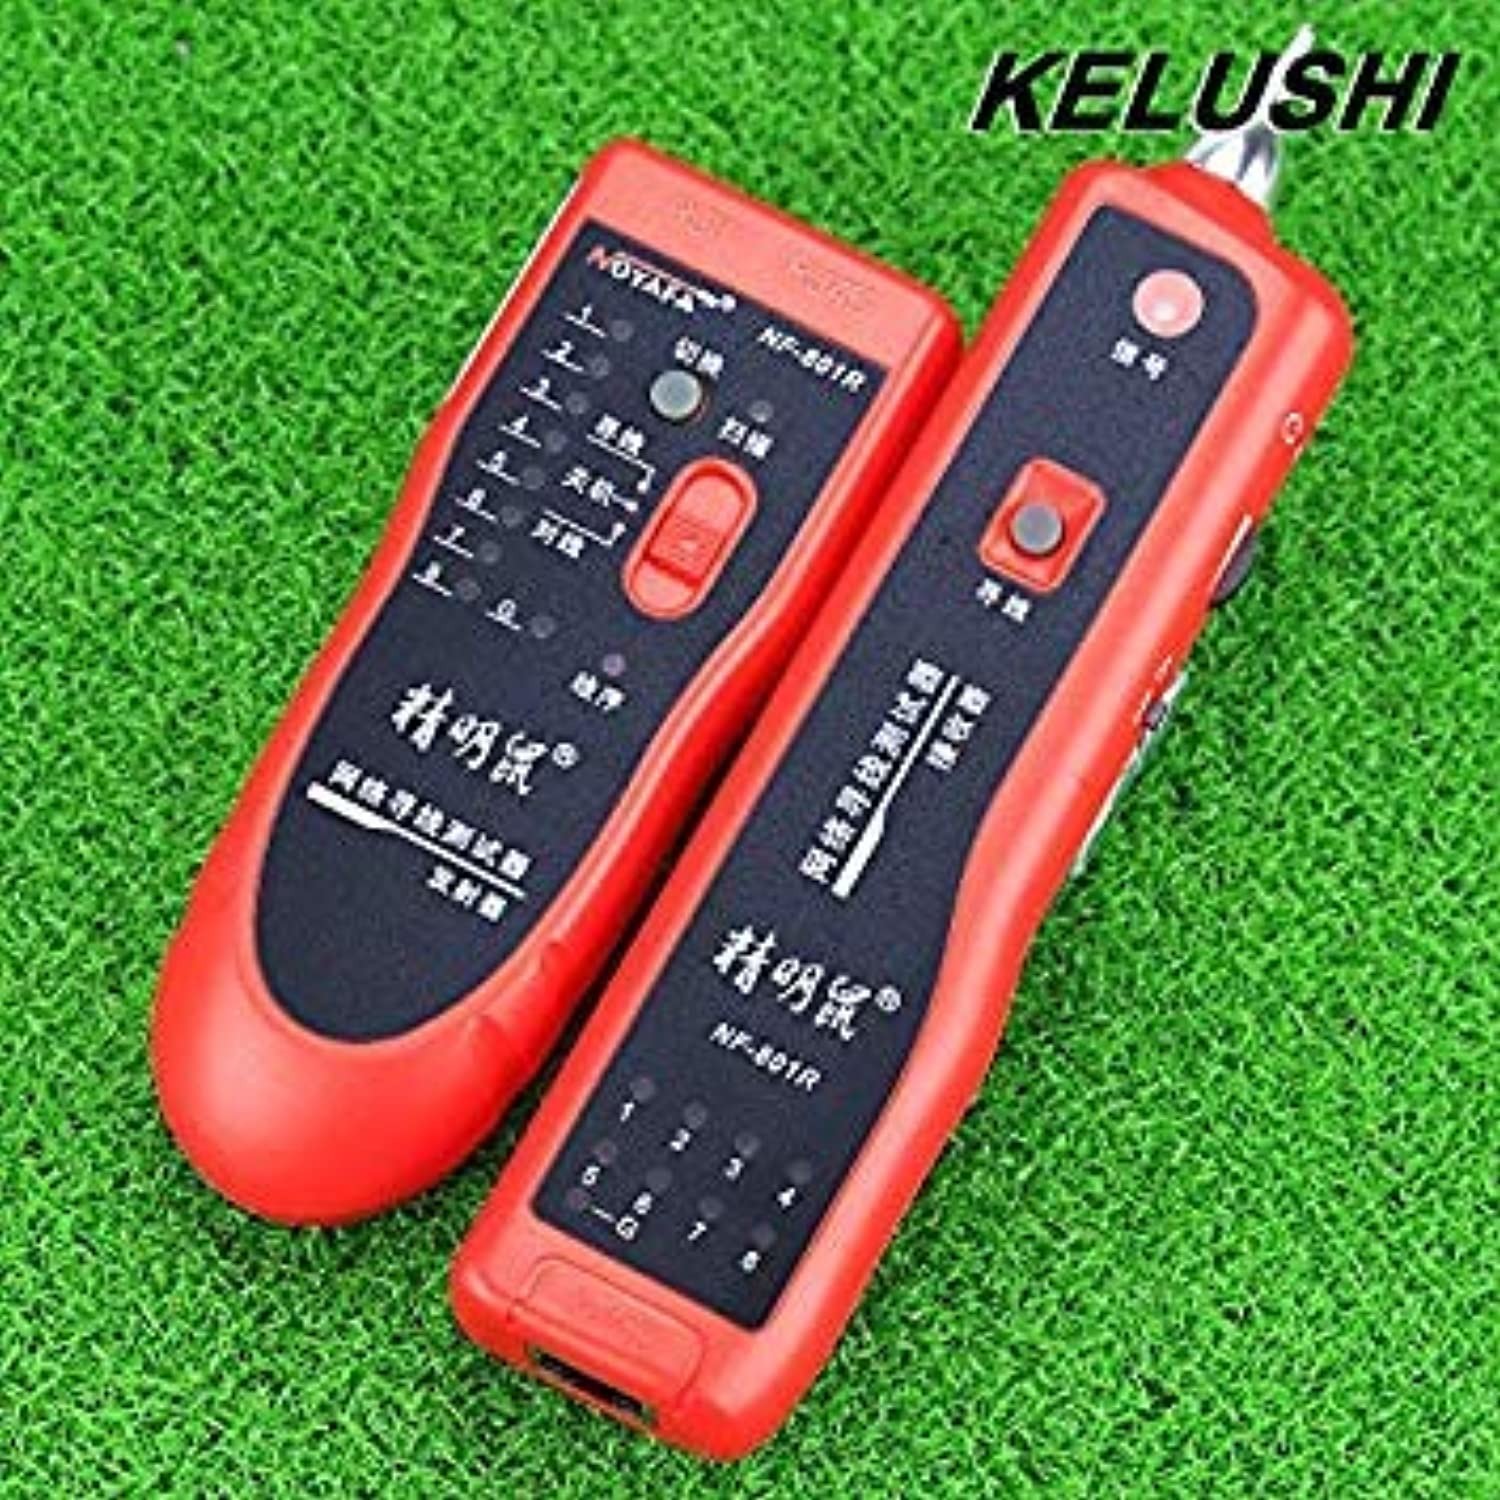 Generic KELUSHI Cable Finder NF-801R Multipurpose Network LAN Cable Tracker Wire Toner Open Tracer Tester Red Support RJ-11 RJ-45